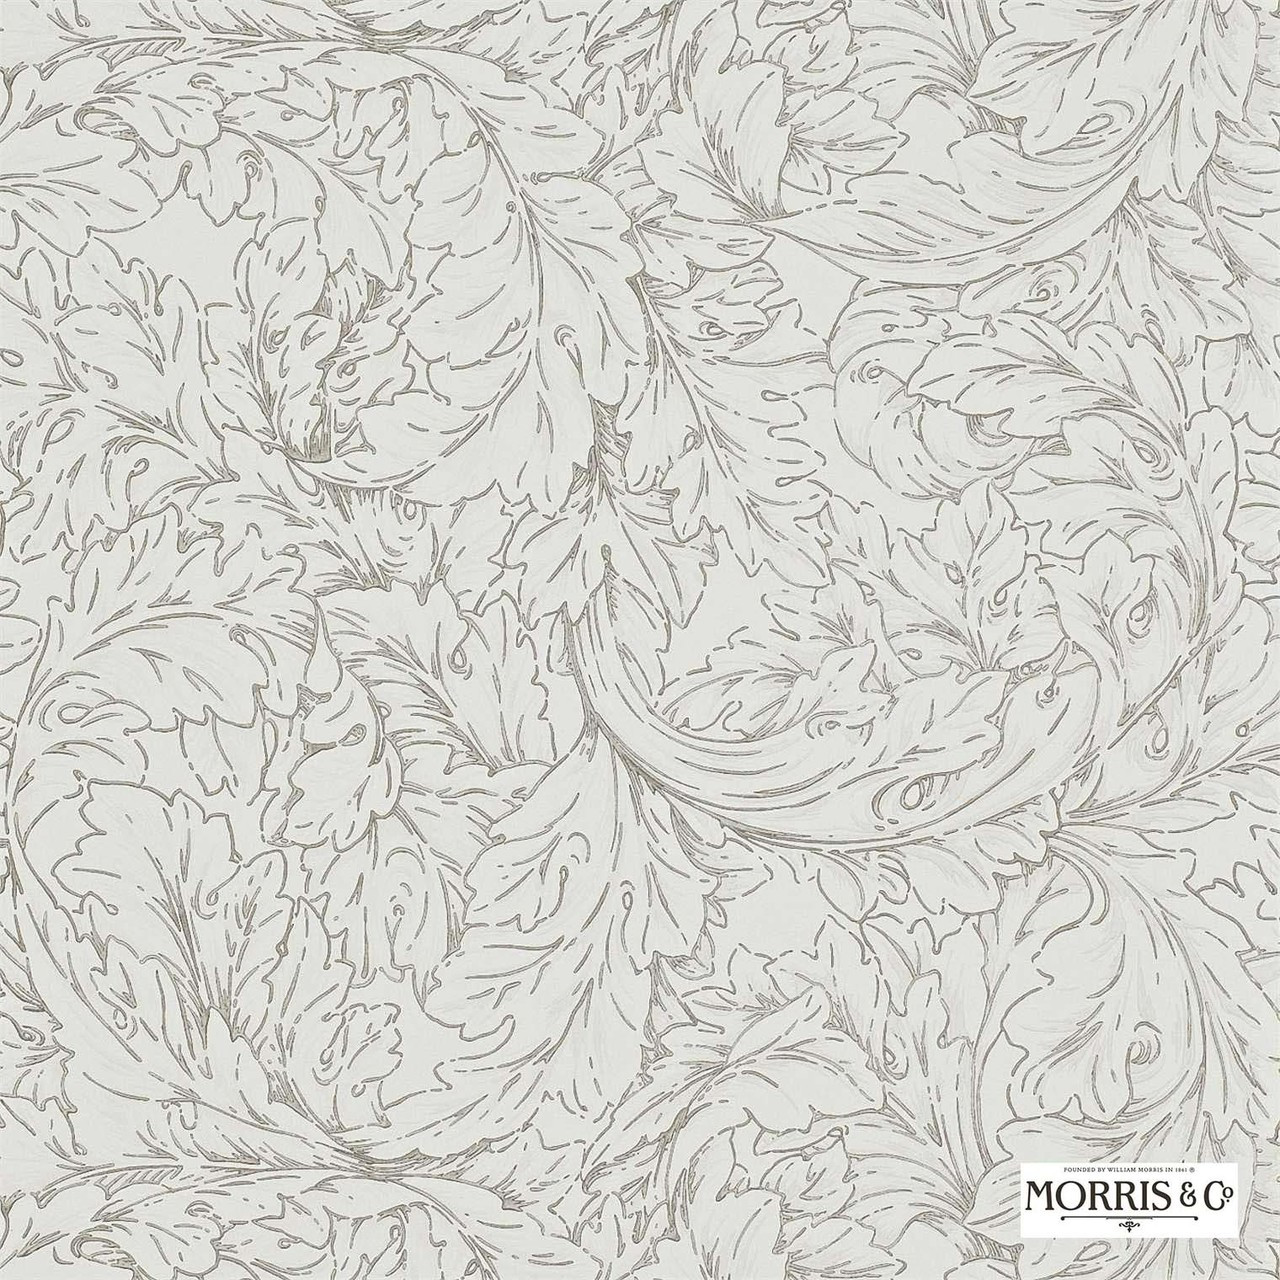 Morris and Co - Acanthus Scroll DMORAC104 | Wallpaper, Wallcovering - White, Art Noveau